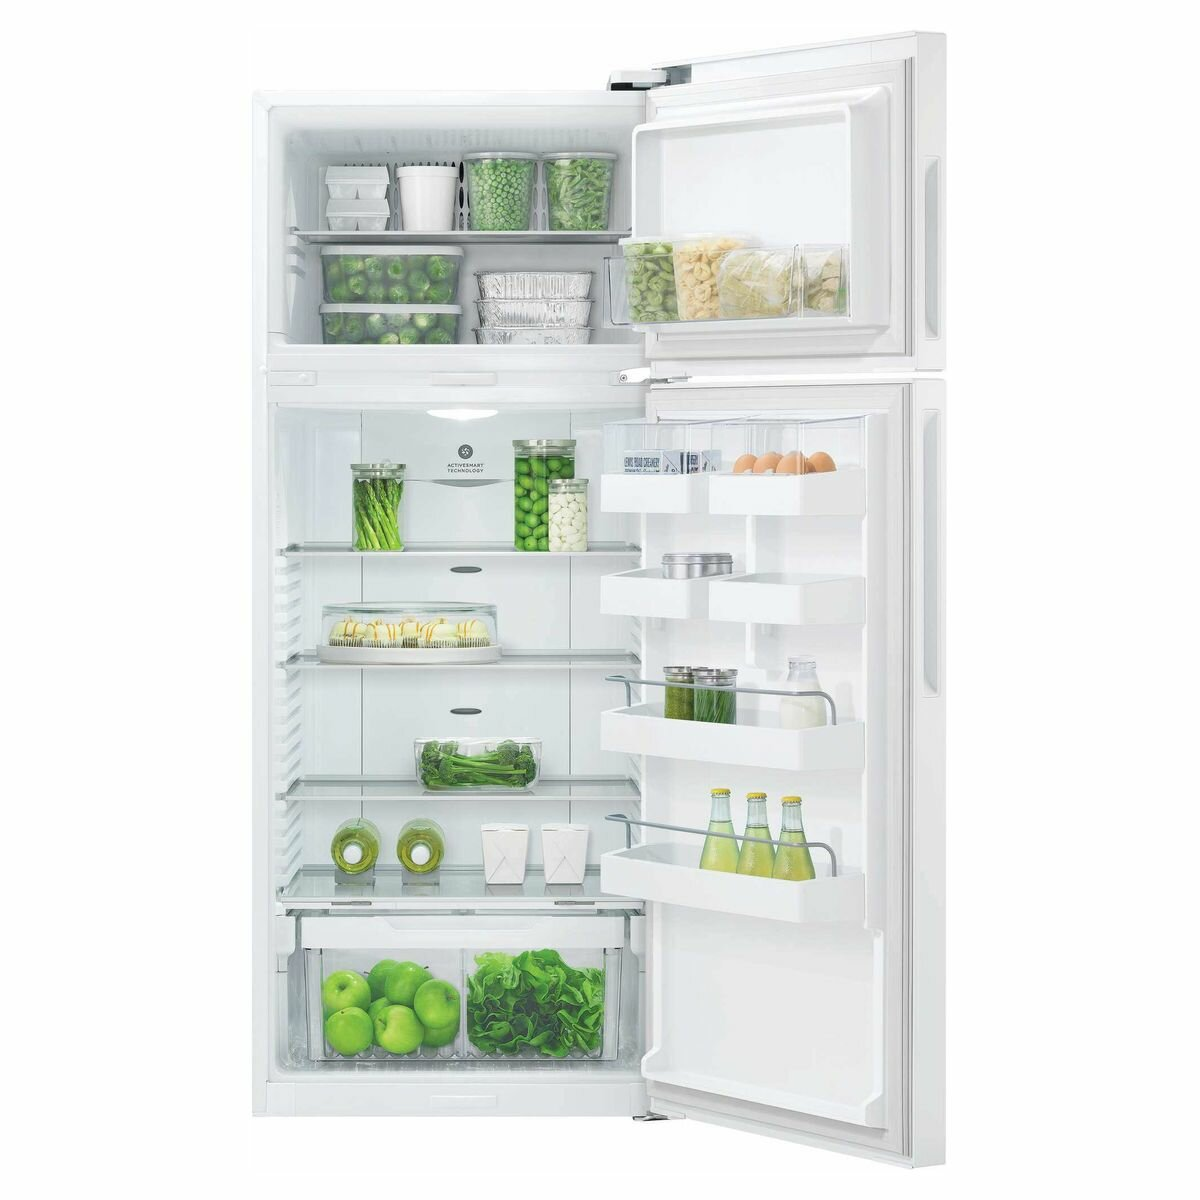 Fisher & Paykel Top Mount Fridge 380 L - Brisbane Home Appliances